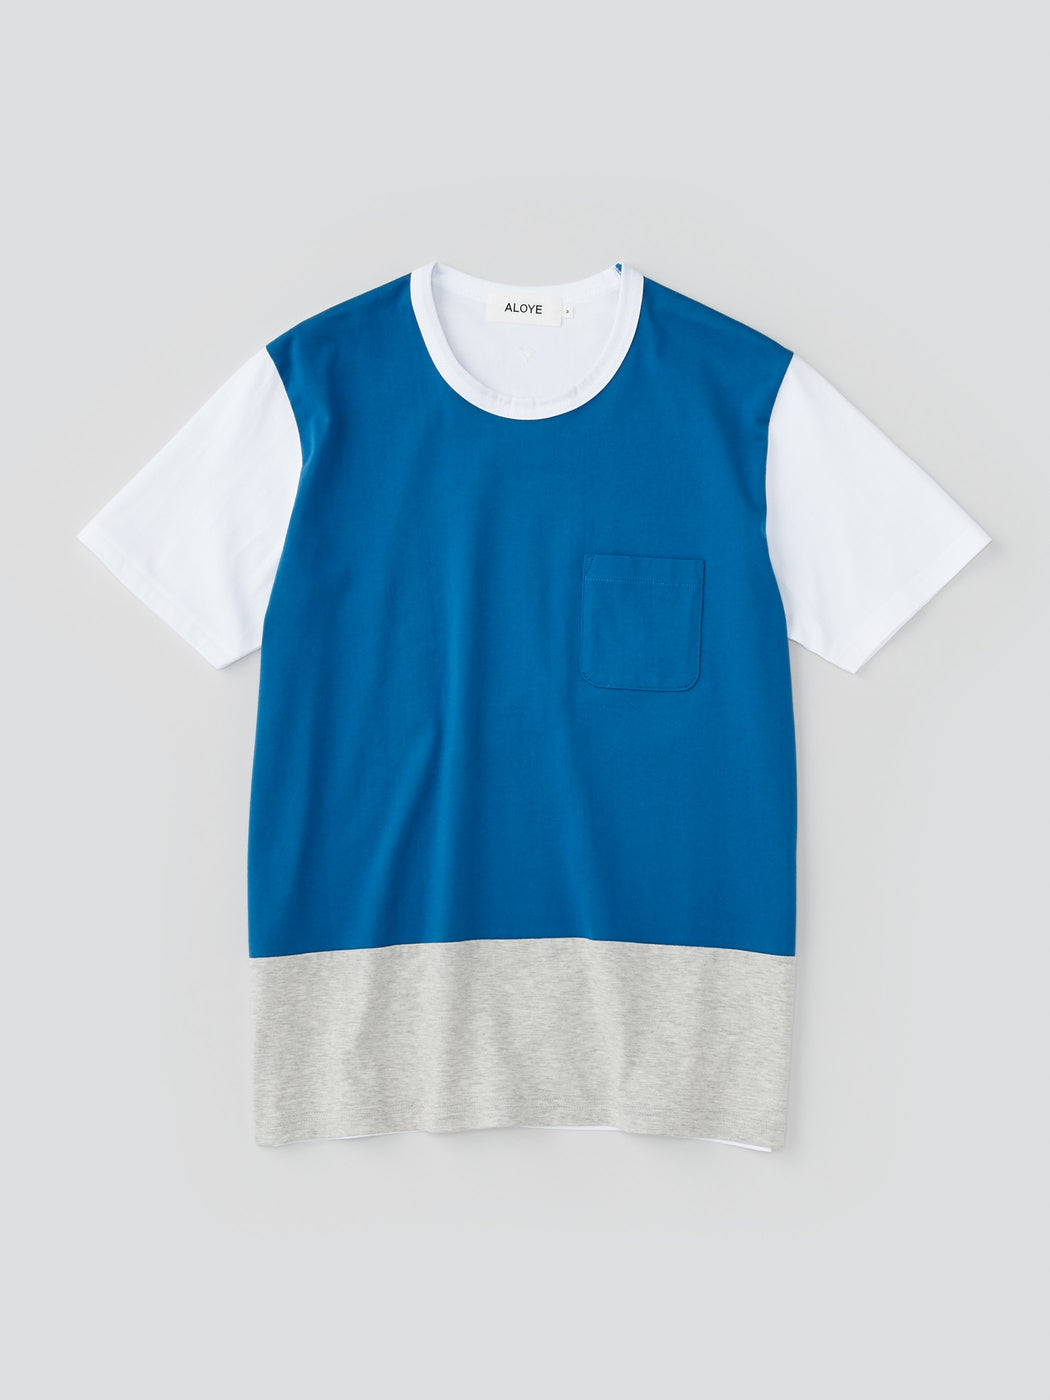 ALOYE Color Blocks Men's Short Sleeve T-shirt Blue-Heather Gray